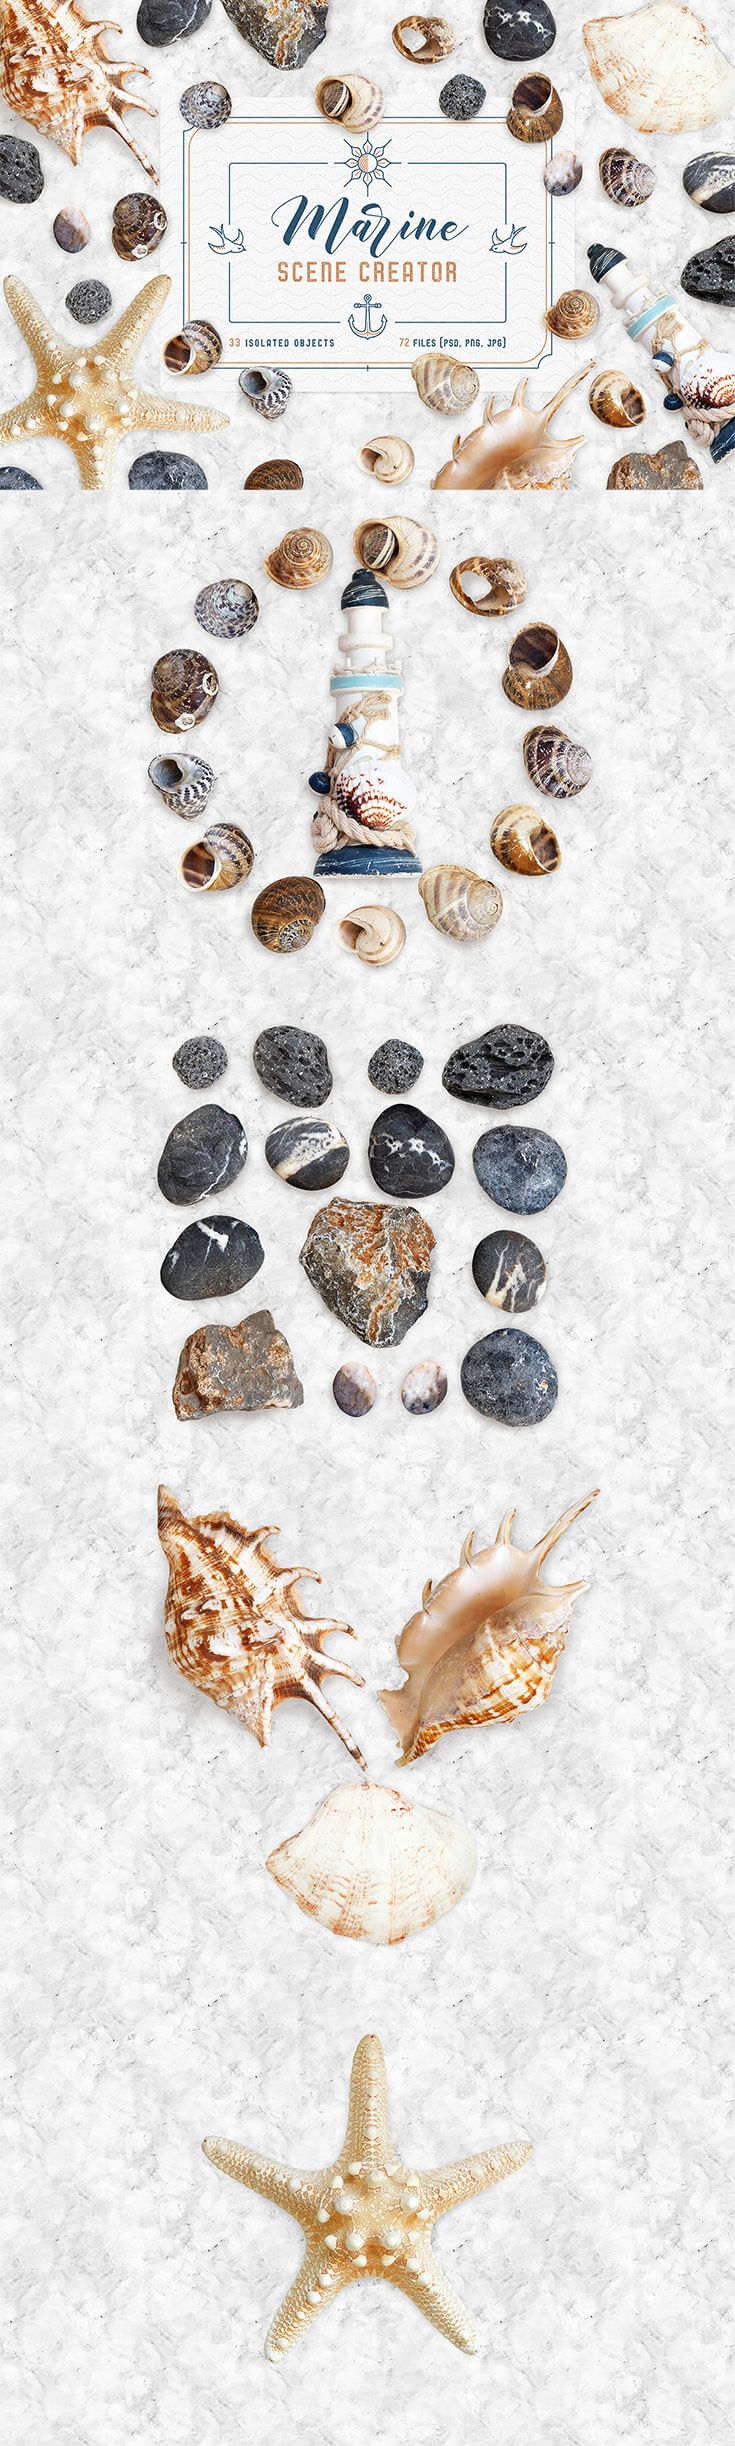 Free Marine #Scene #Creator #Mockupare coming from TimXez. It is available in a neat PSD format with smart layer to make your work easier. All the elements are movable. This mockup scene contains collection of various marine objects, for ex: Stones, Little shells, Big shells, Starfish, and Souvenir are isolated.